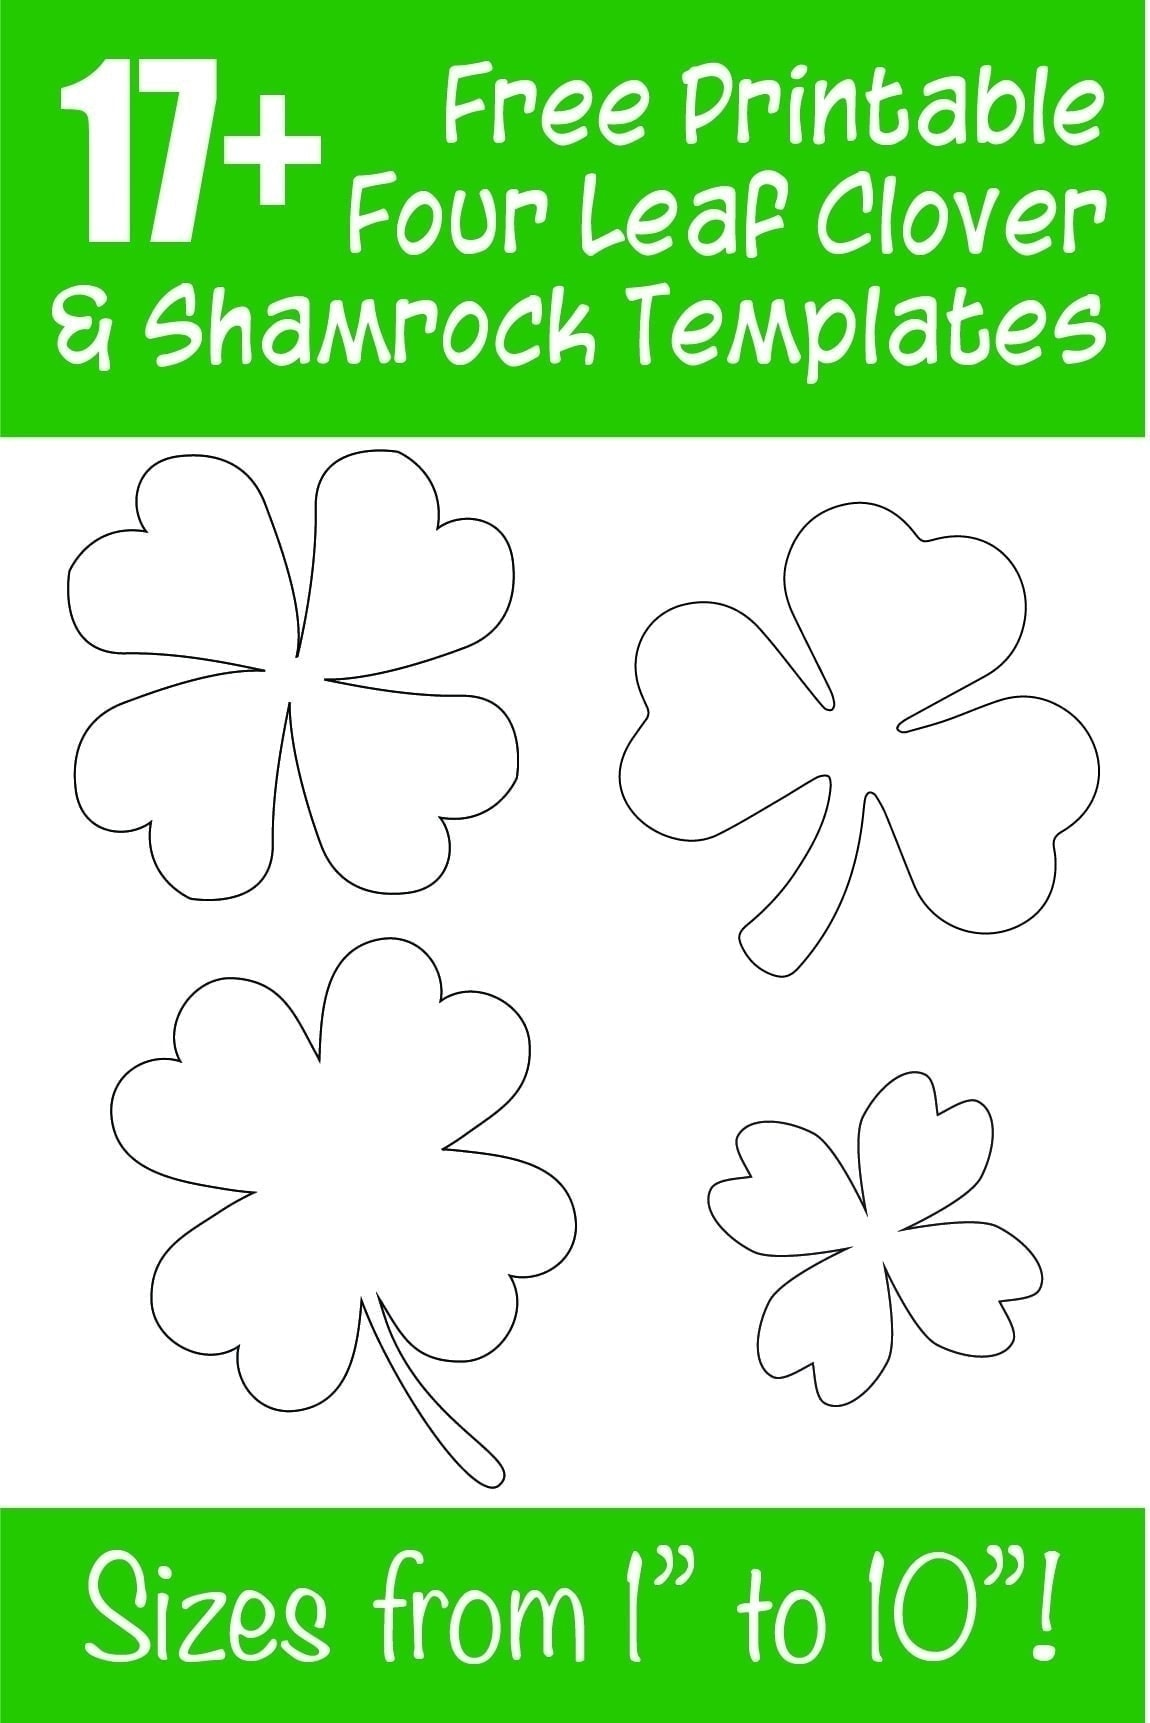 picture relating to Shamrock Template Printable referred to as 17+ Totally free Printable 4 Leaf Clover Shamrock Templates